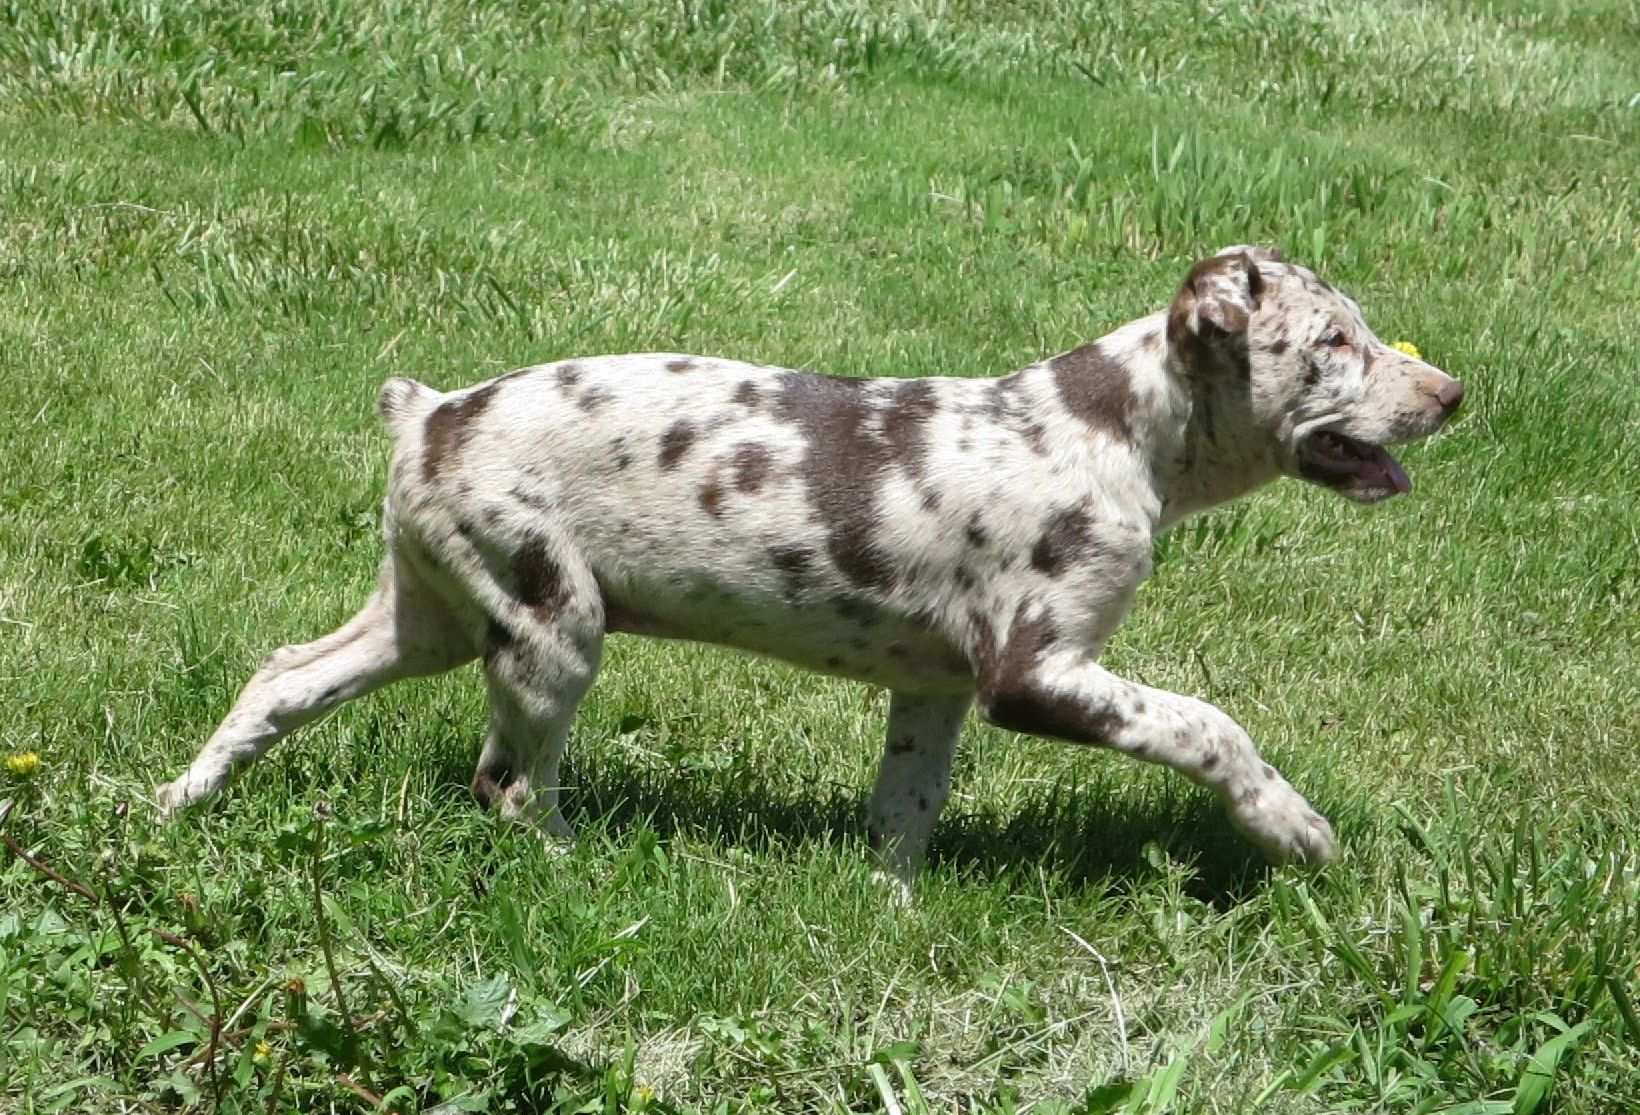 Hanging tree cow dogs for sale - Registered Hangin Tree Cowdog Puppies For Sale For More Information Click On The Image Or